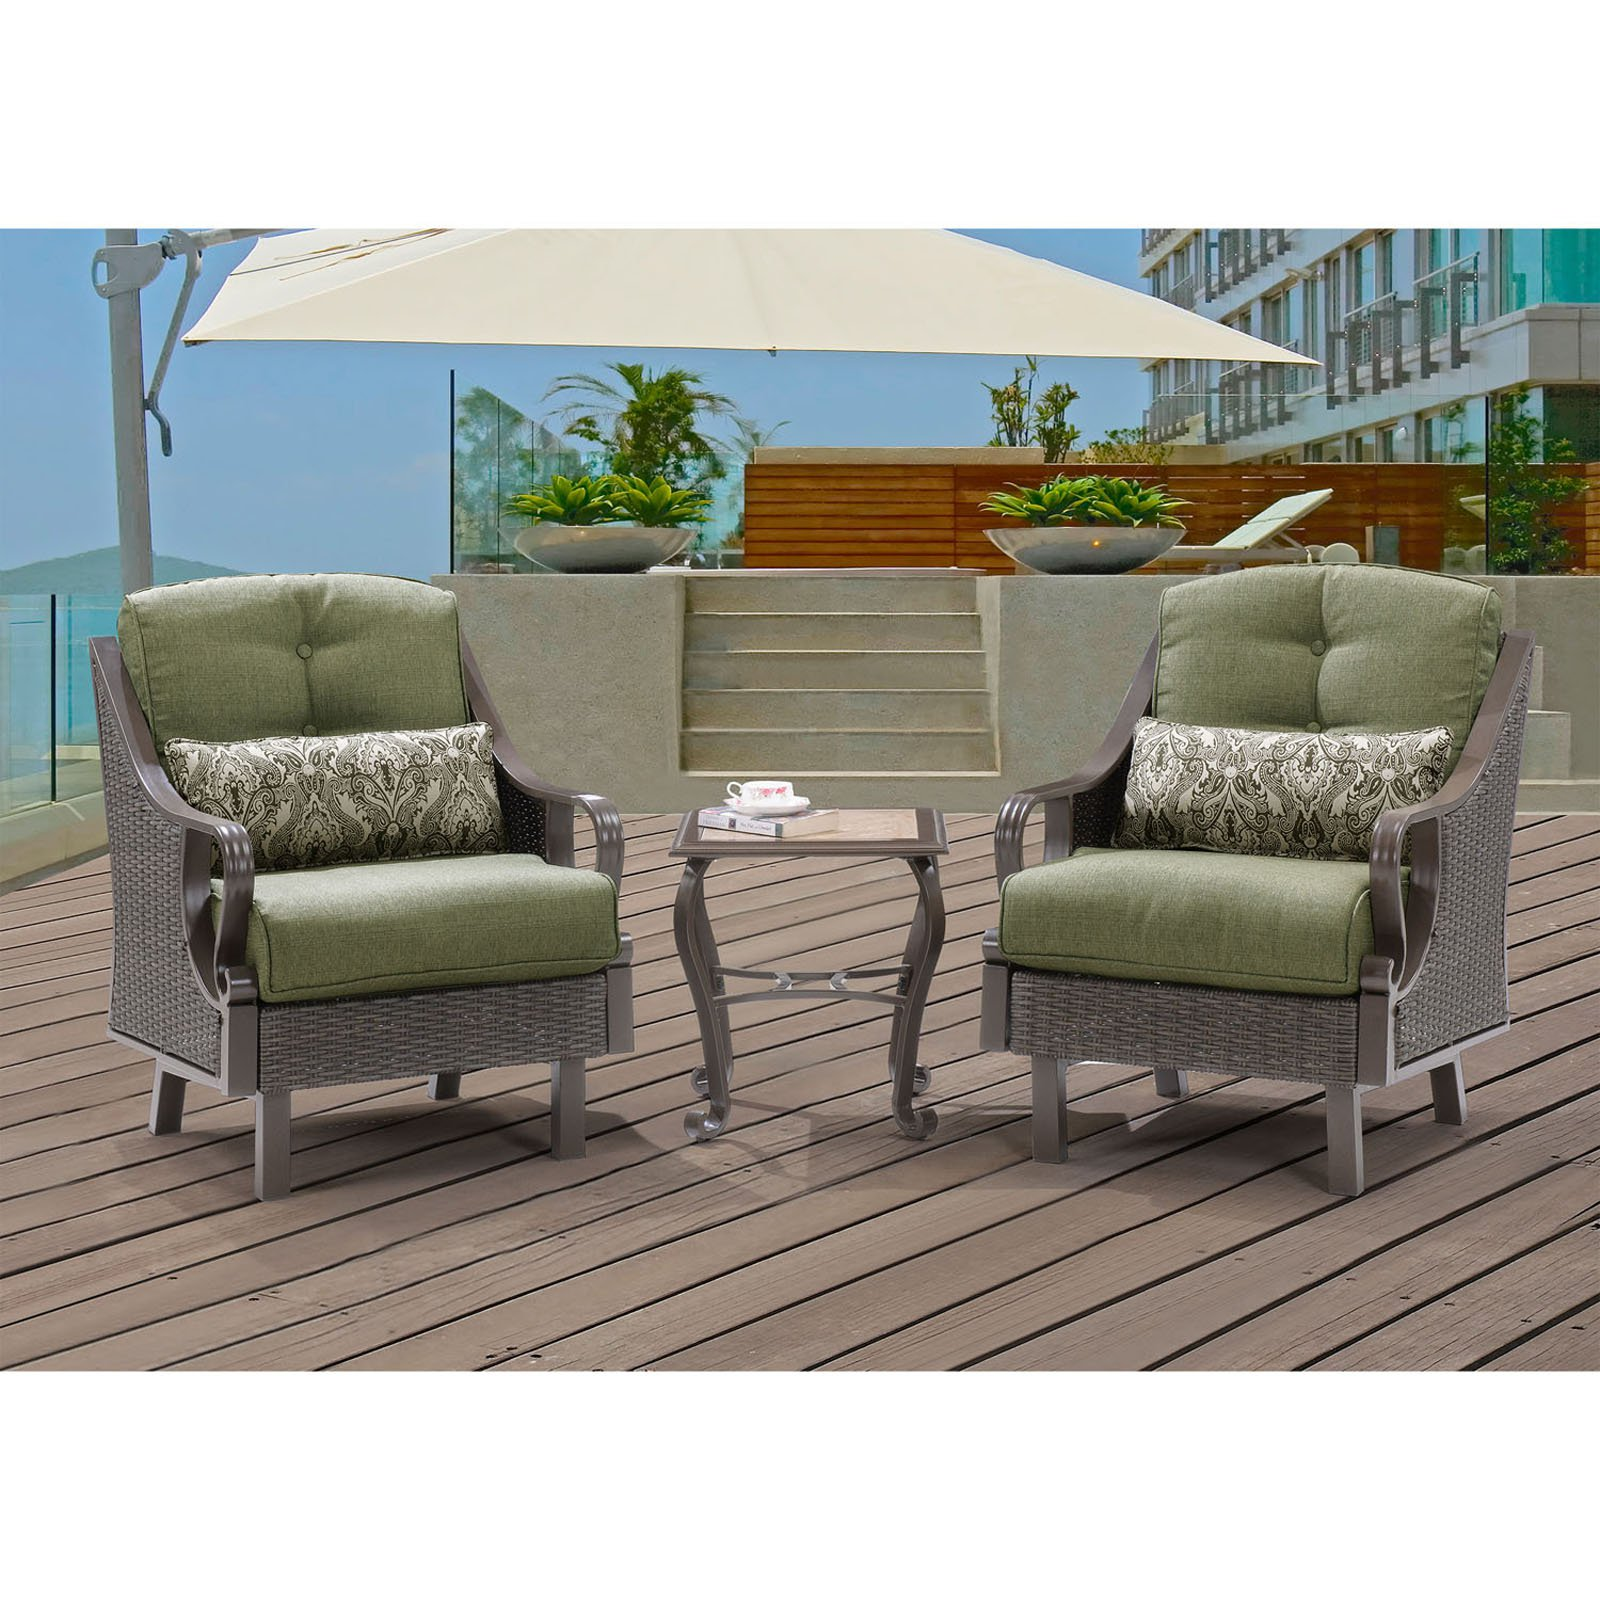 Hanover Outdoor Furniture 5 Piece Orange Aluminum Patio